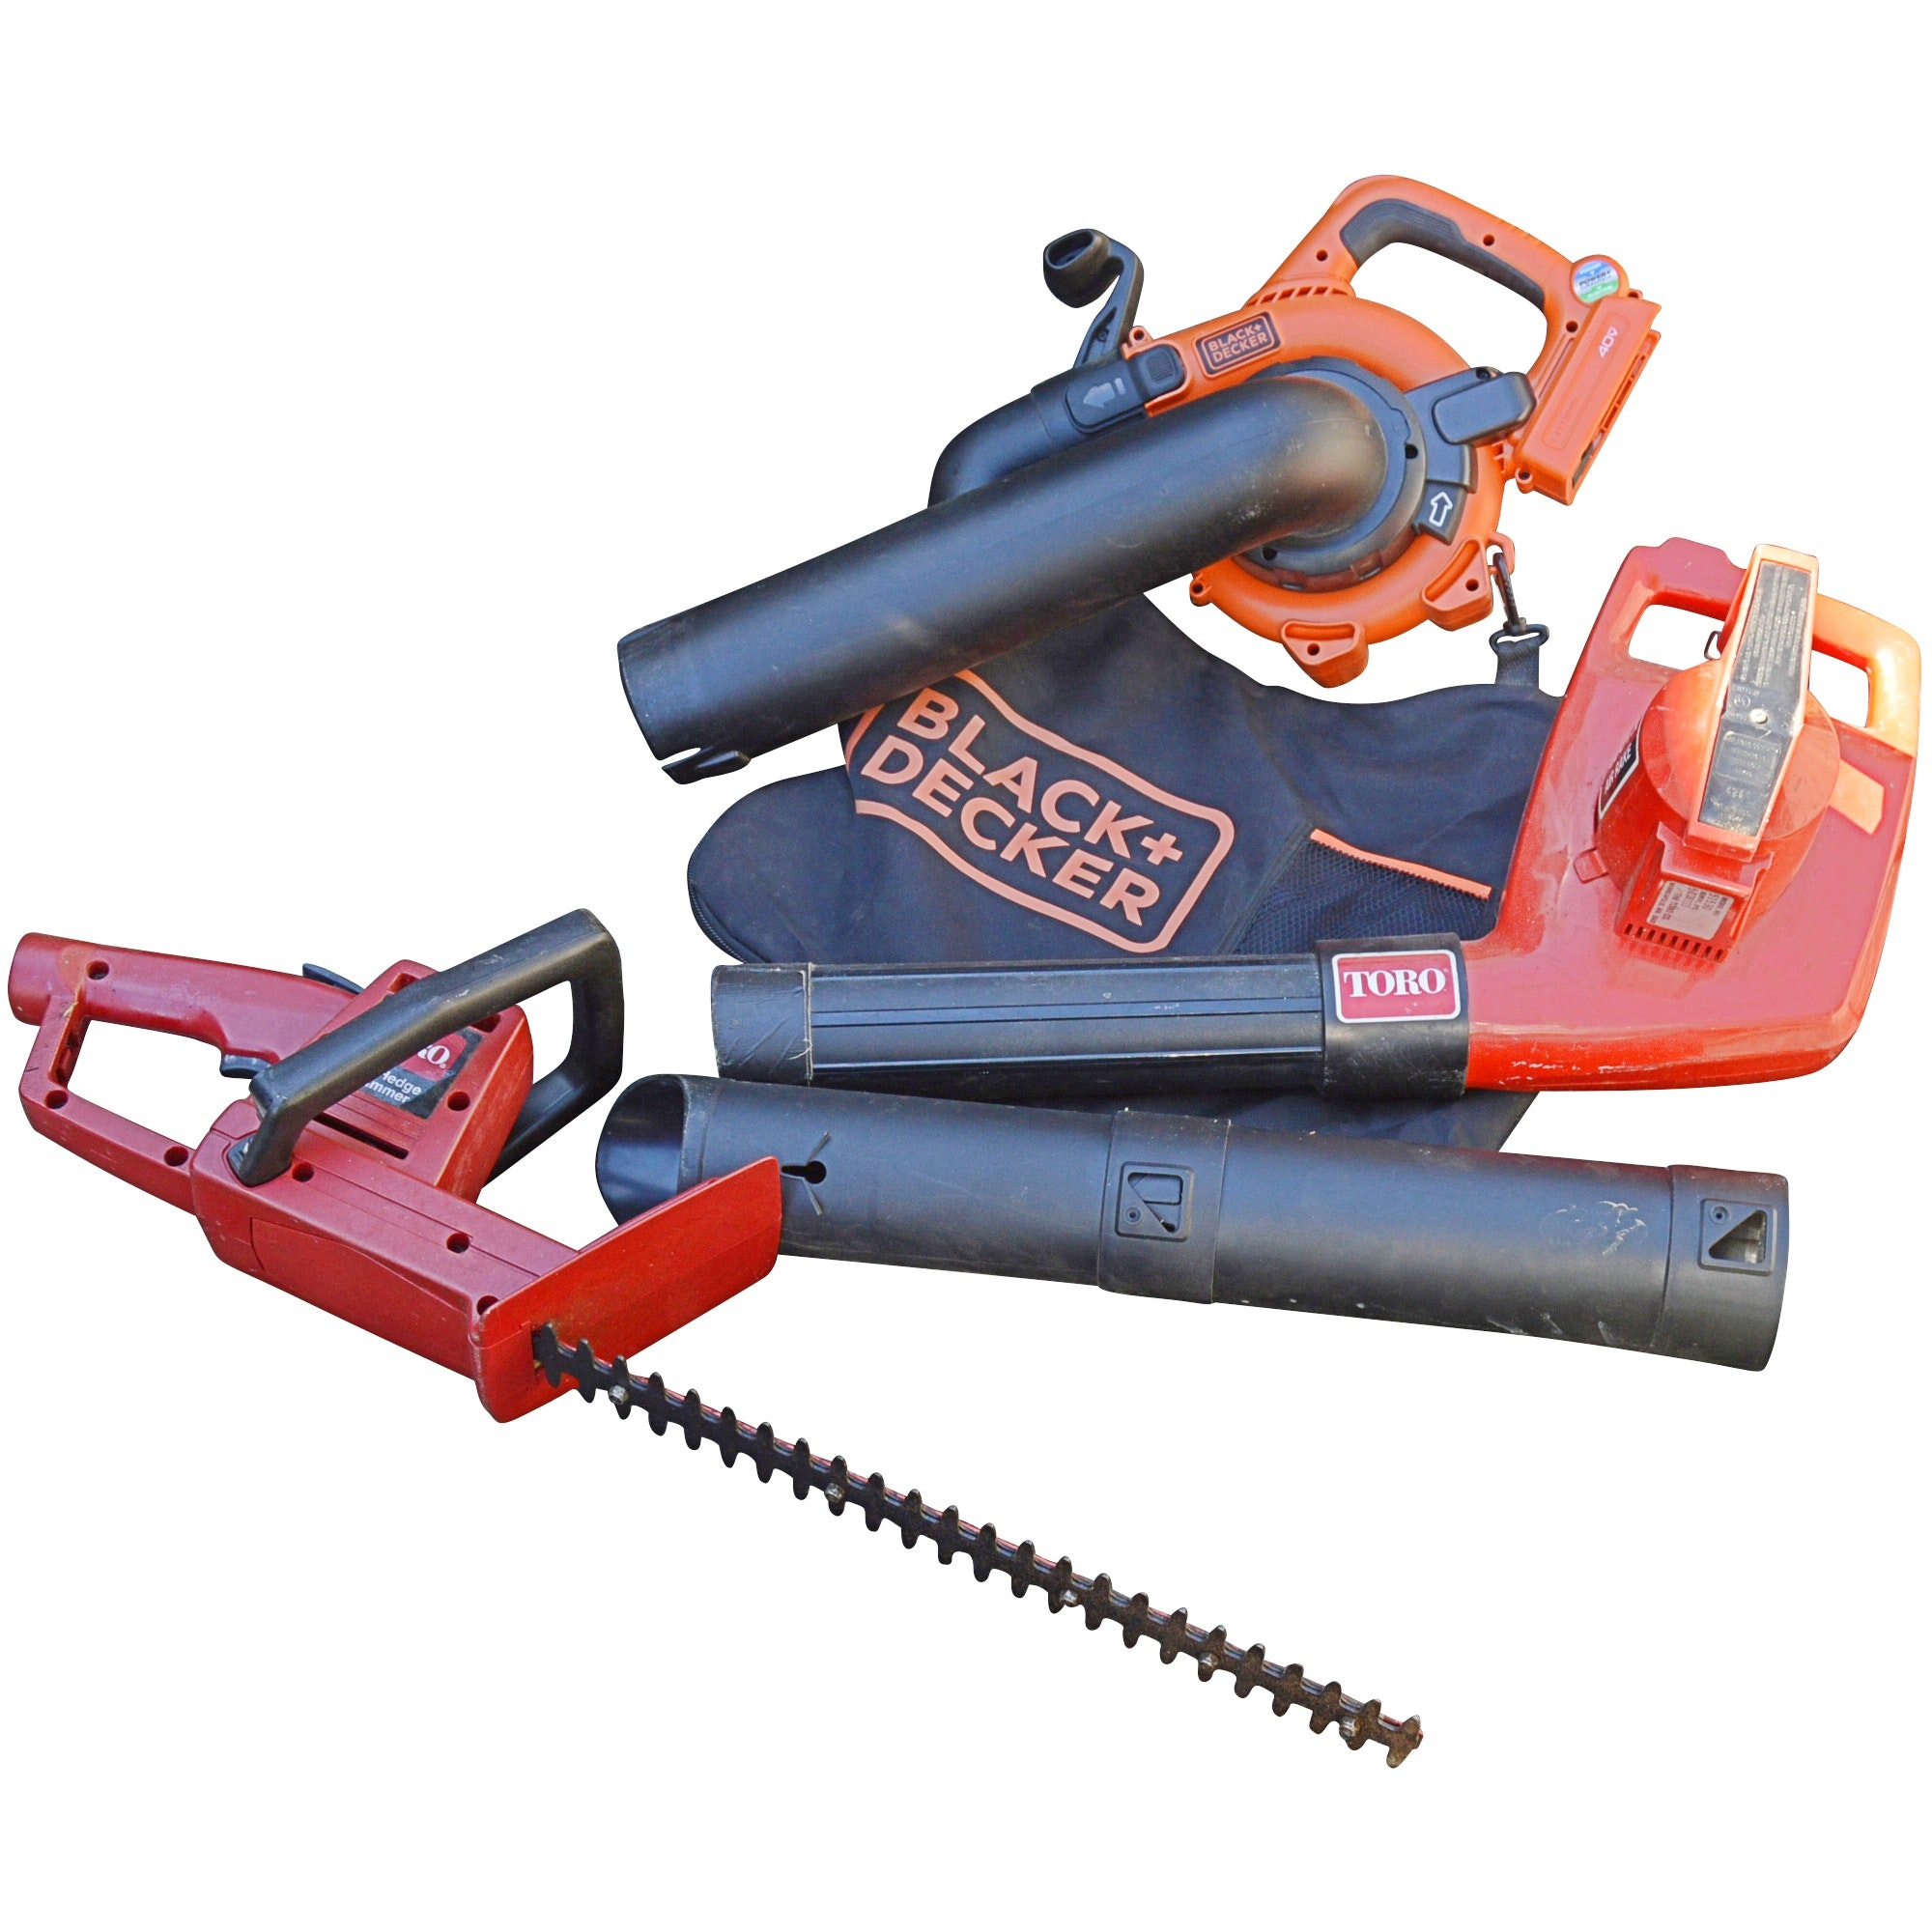 Power Garden Tools with Black & Decker and Toro